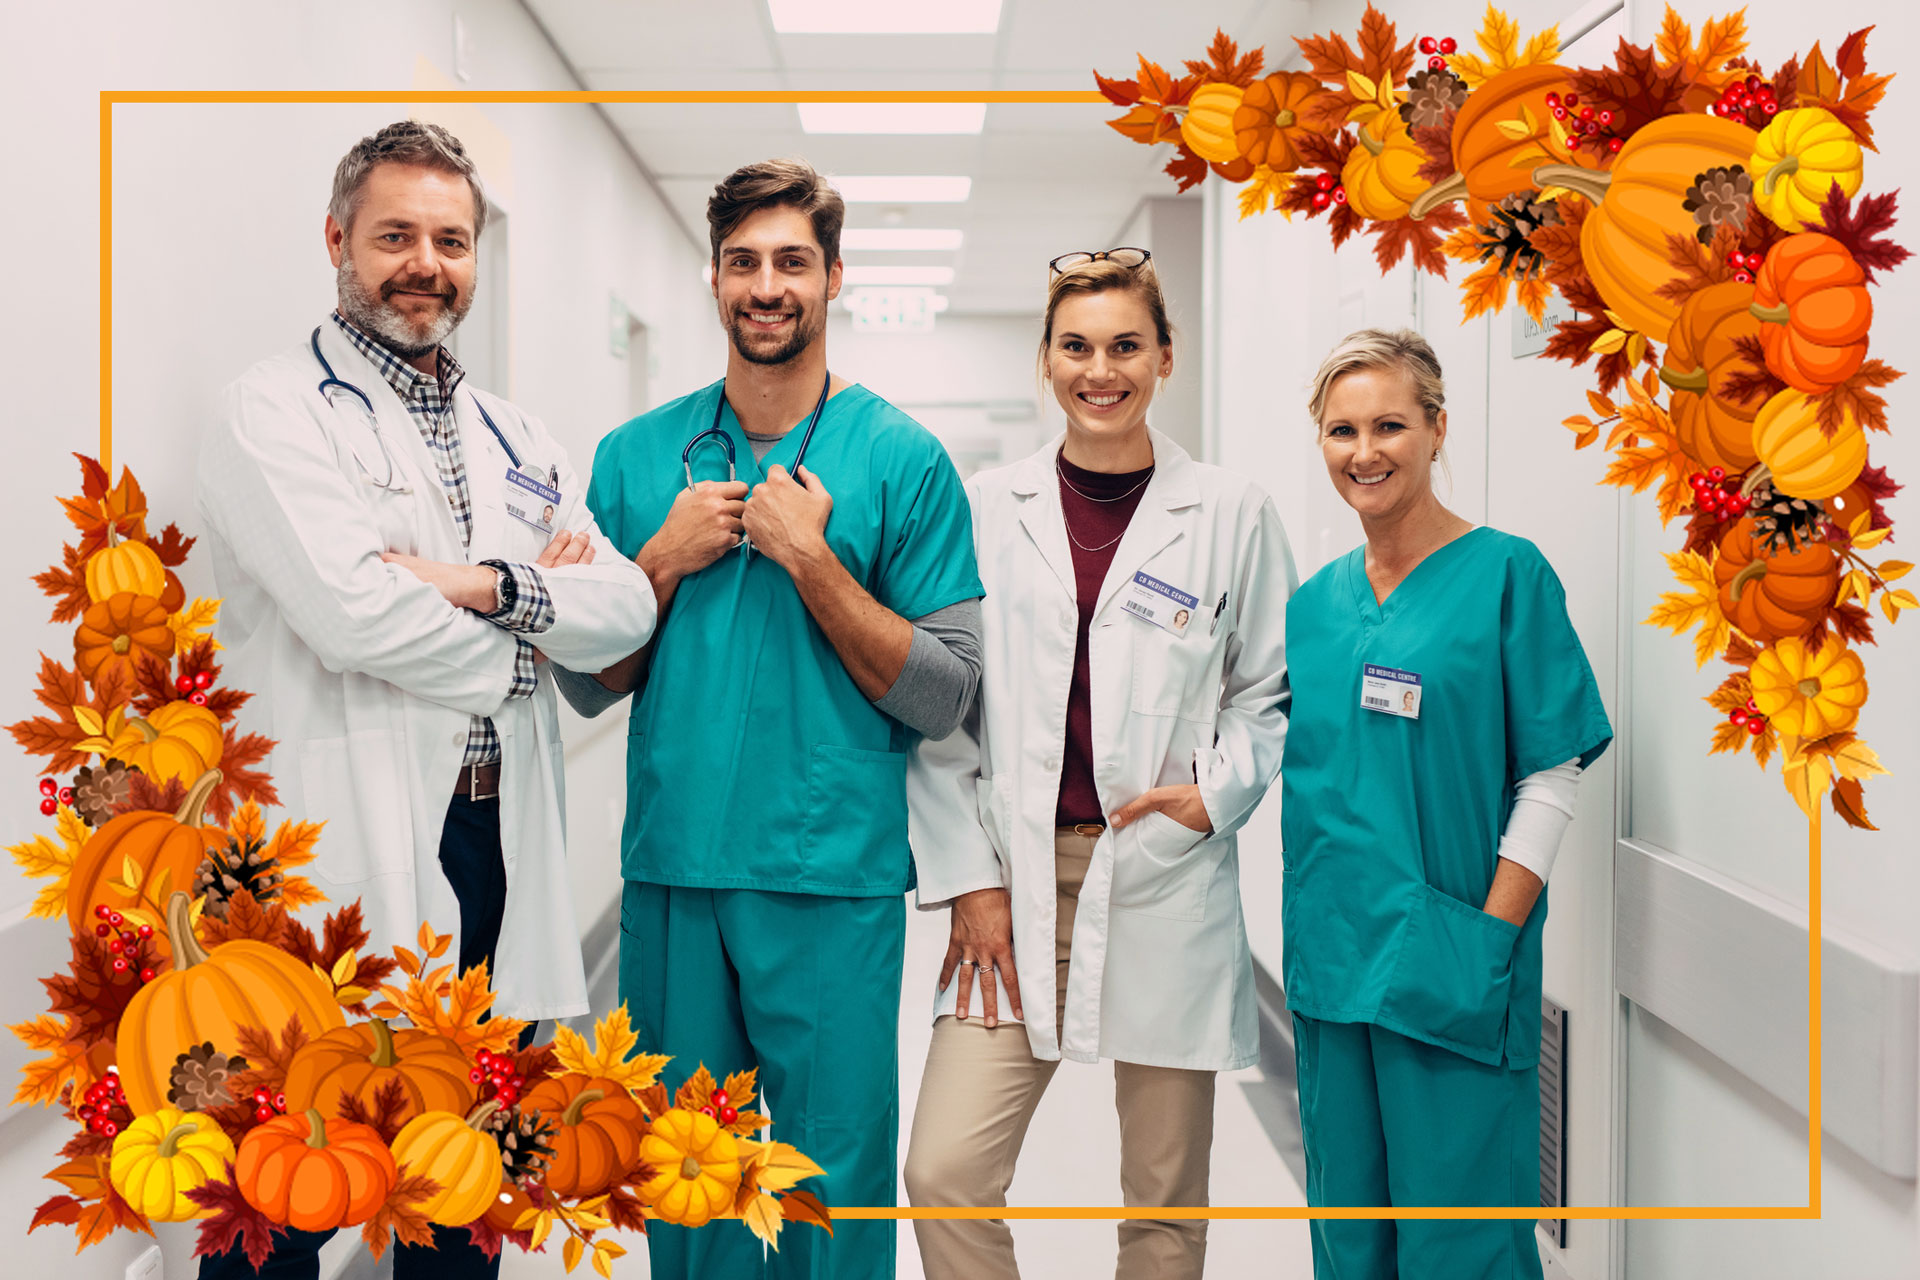 Working on Thanksgiving: What it's like for Doctors and Healthcare professionals